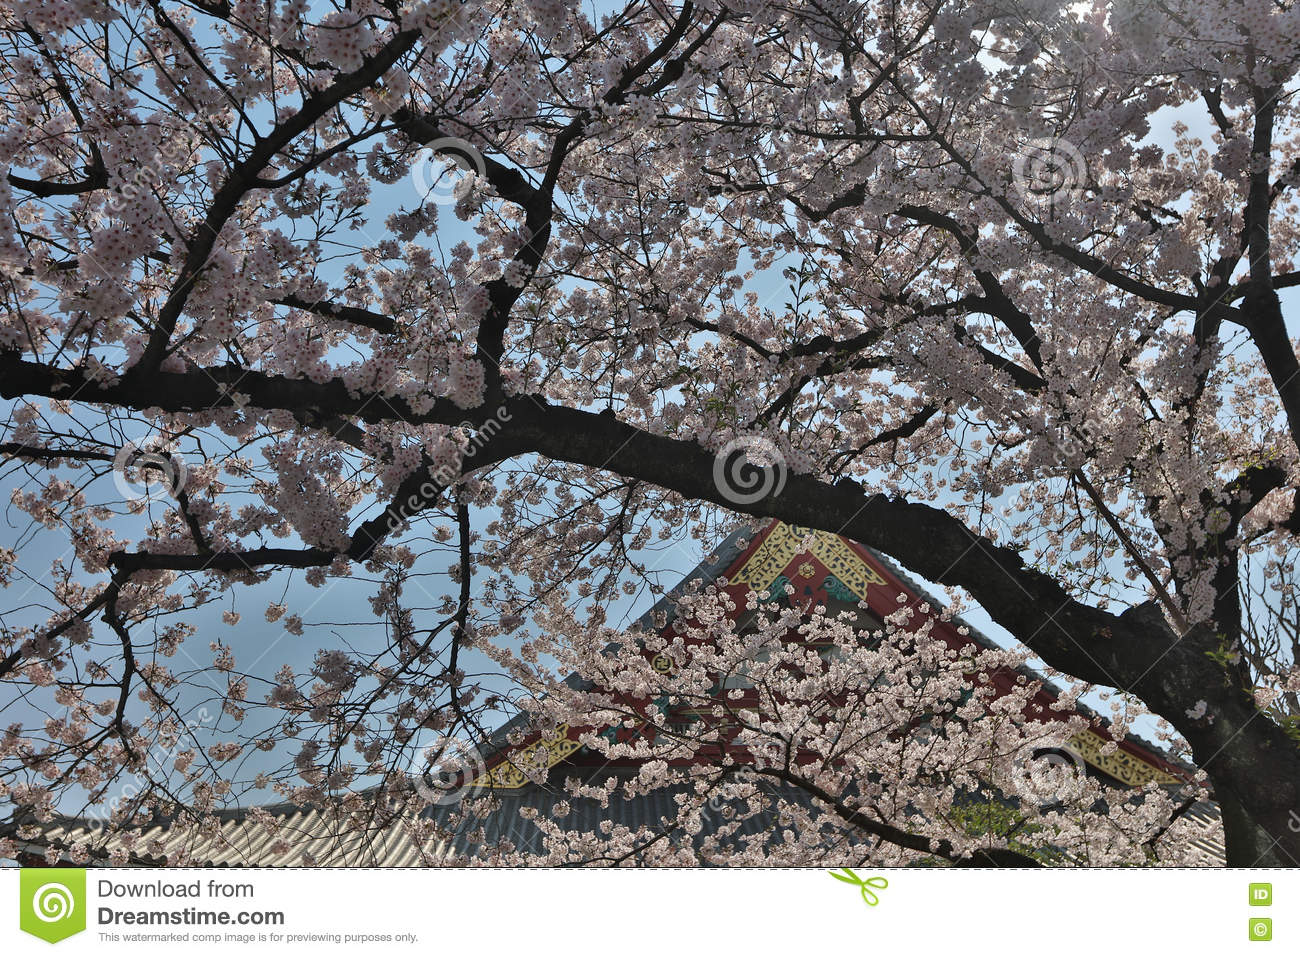 Denpo-in in Asakusa during cherry blossom on